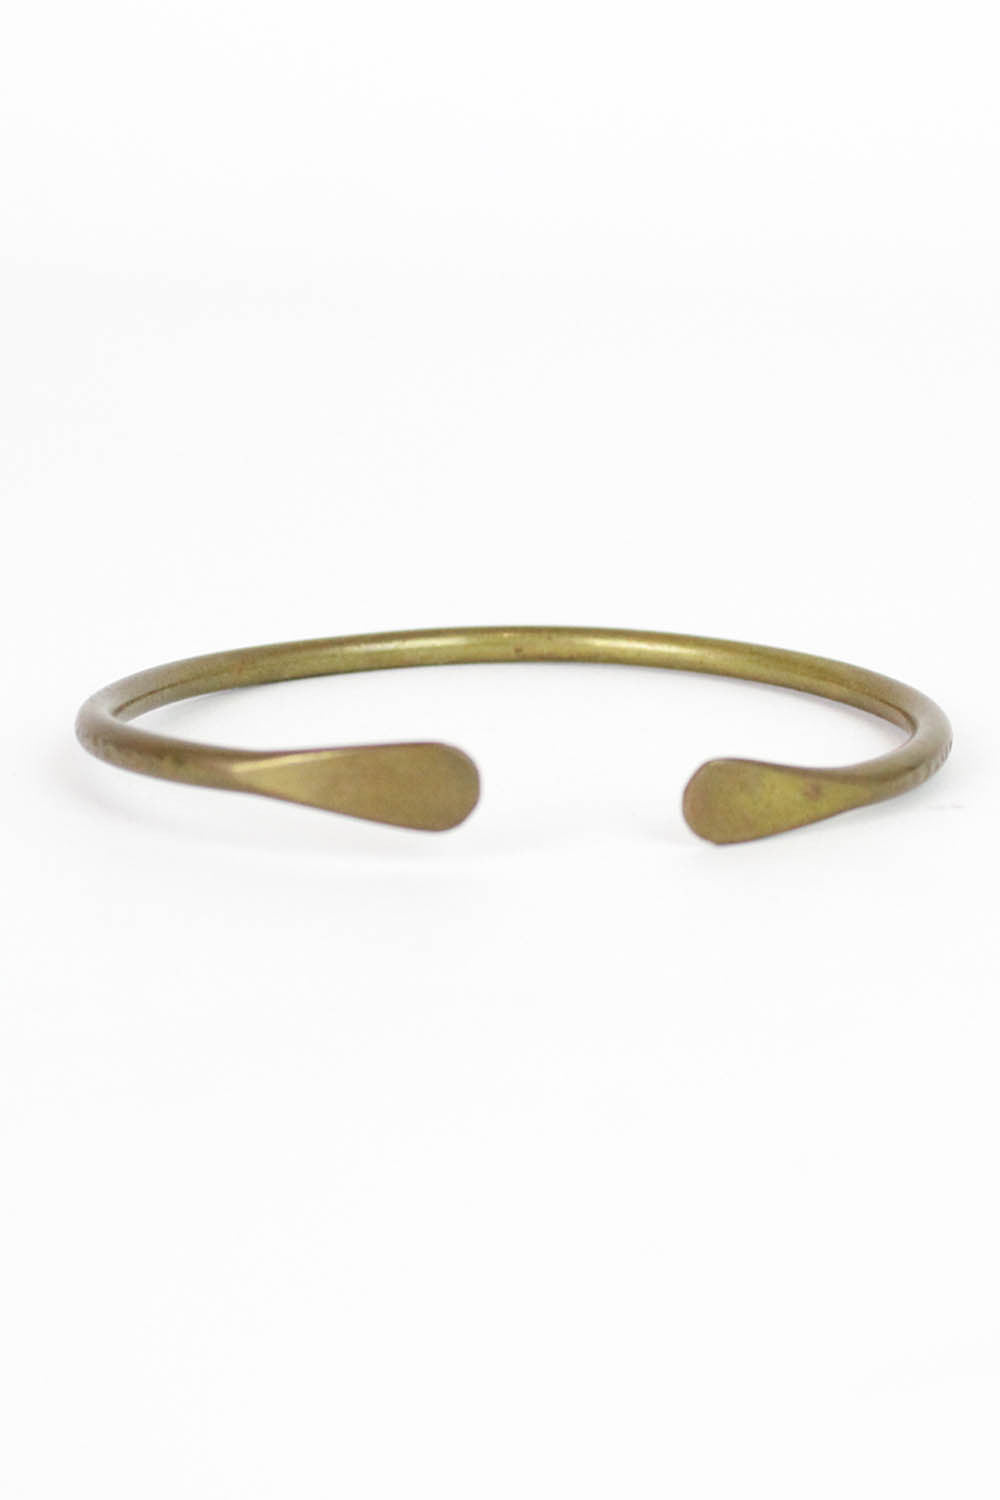 Tribal Brass Forearm Cuff #2